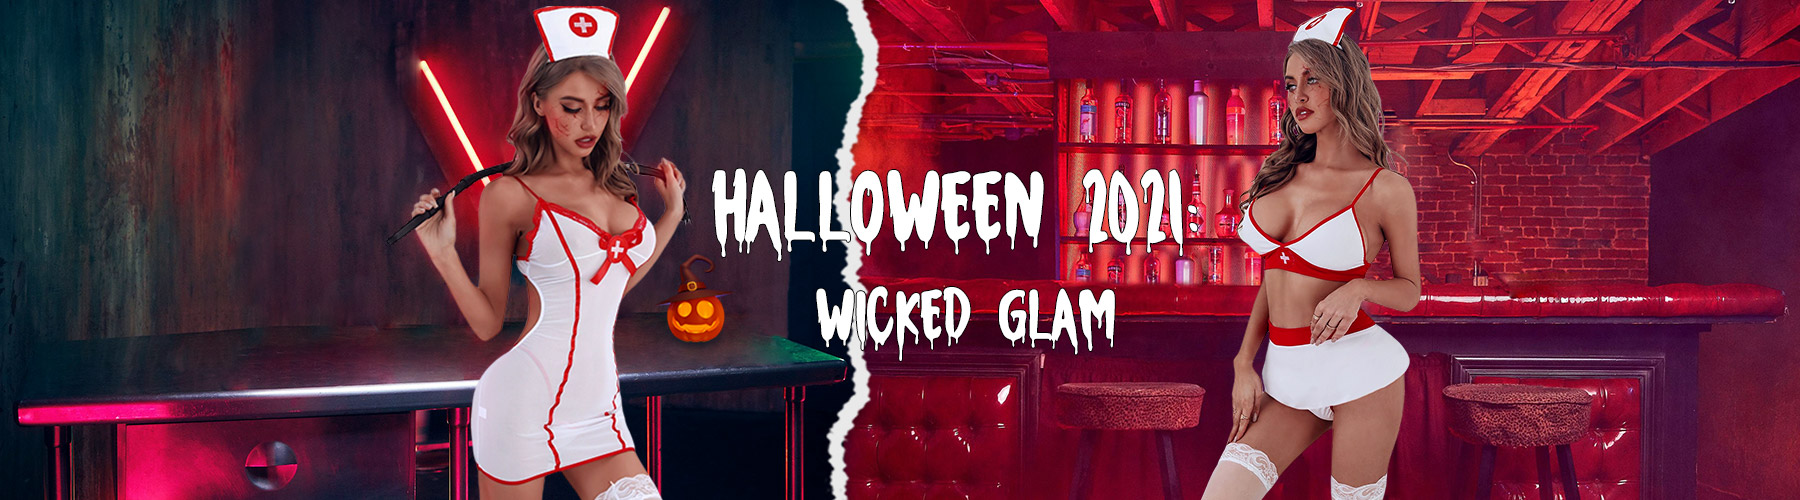 Halloween 2021 Preview